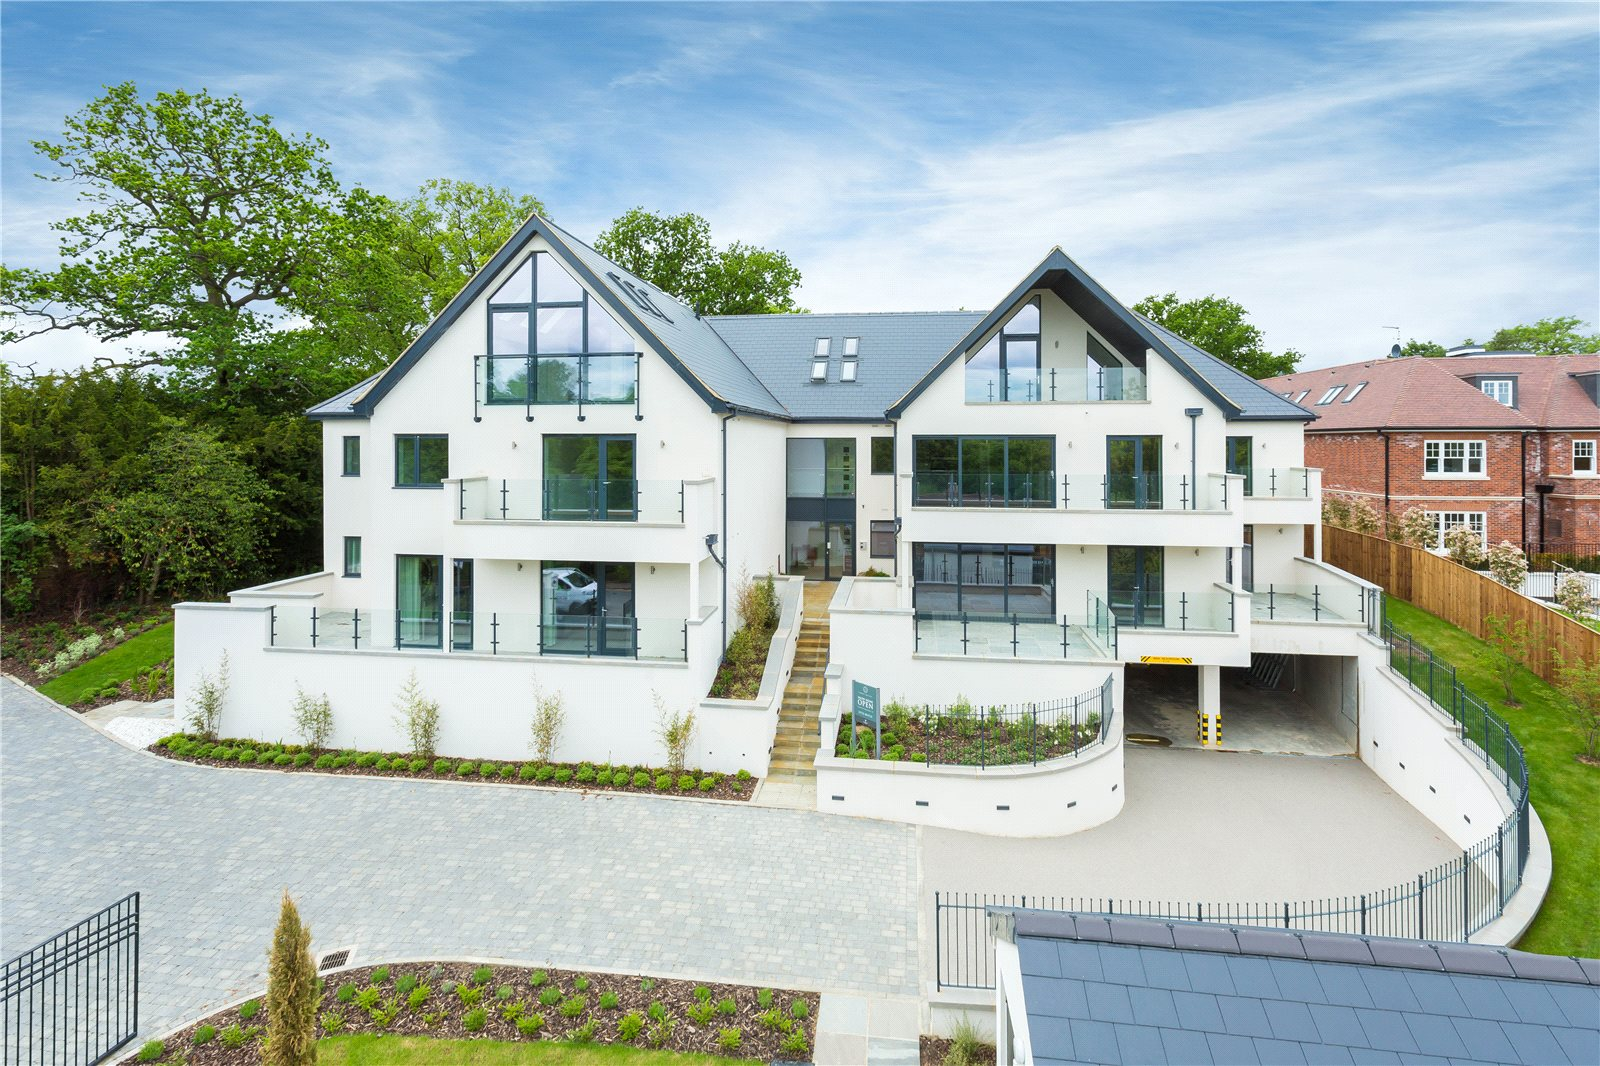 Appartement pour l Vente à South Park Crescent, Gerrards Cross, Buckinghamshire, SL9 Gerrards Cross, Angleterre